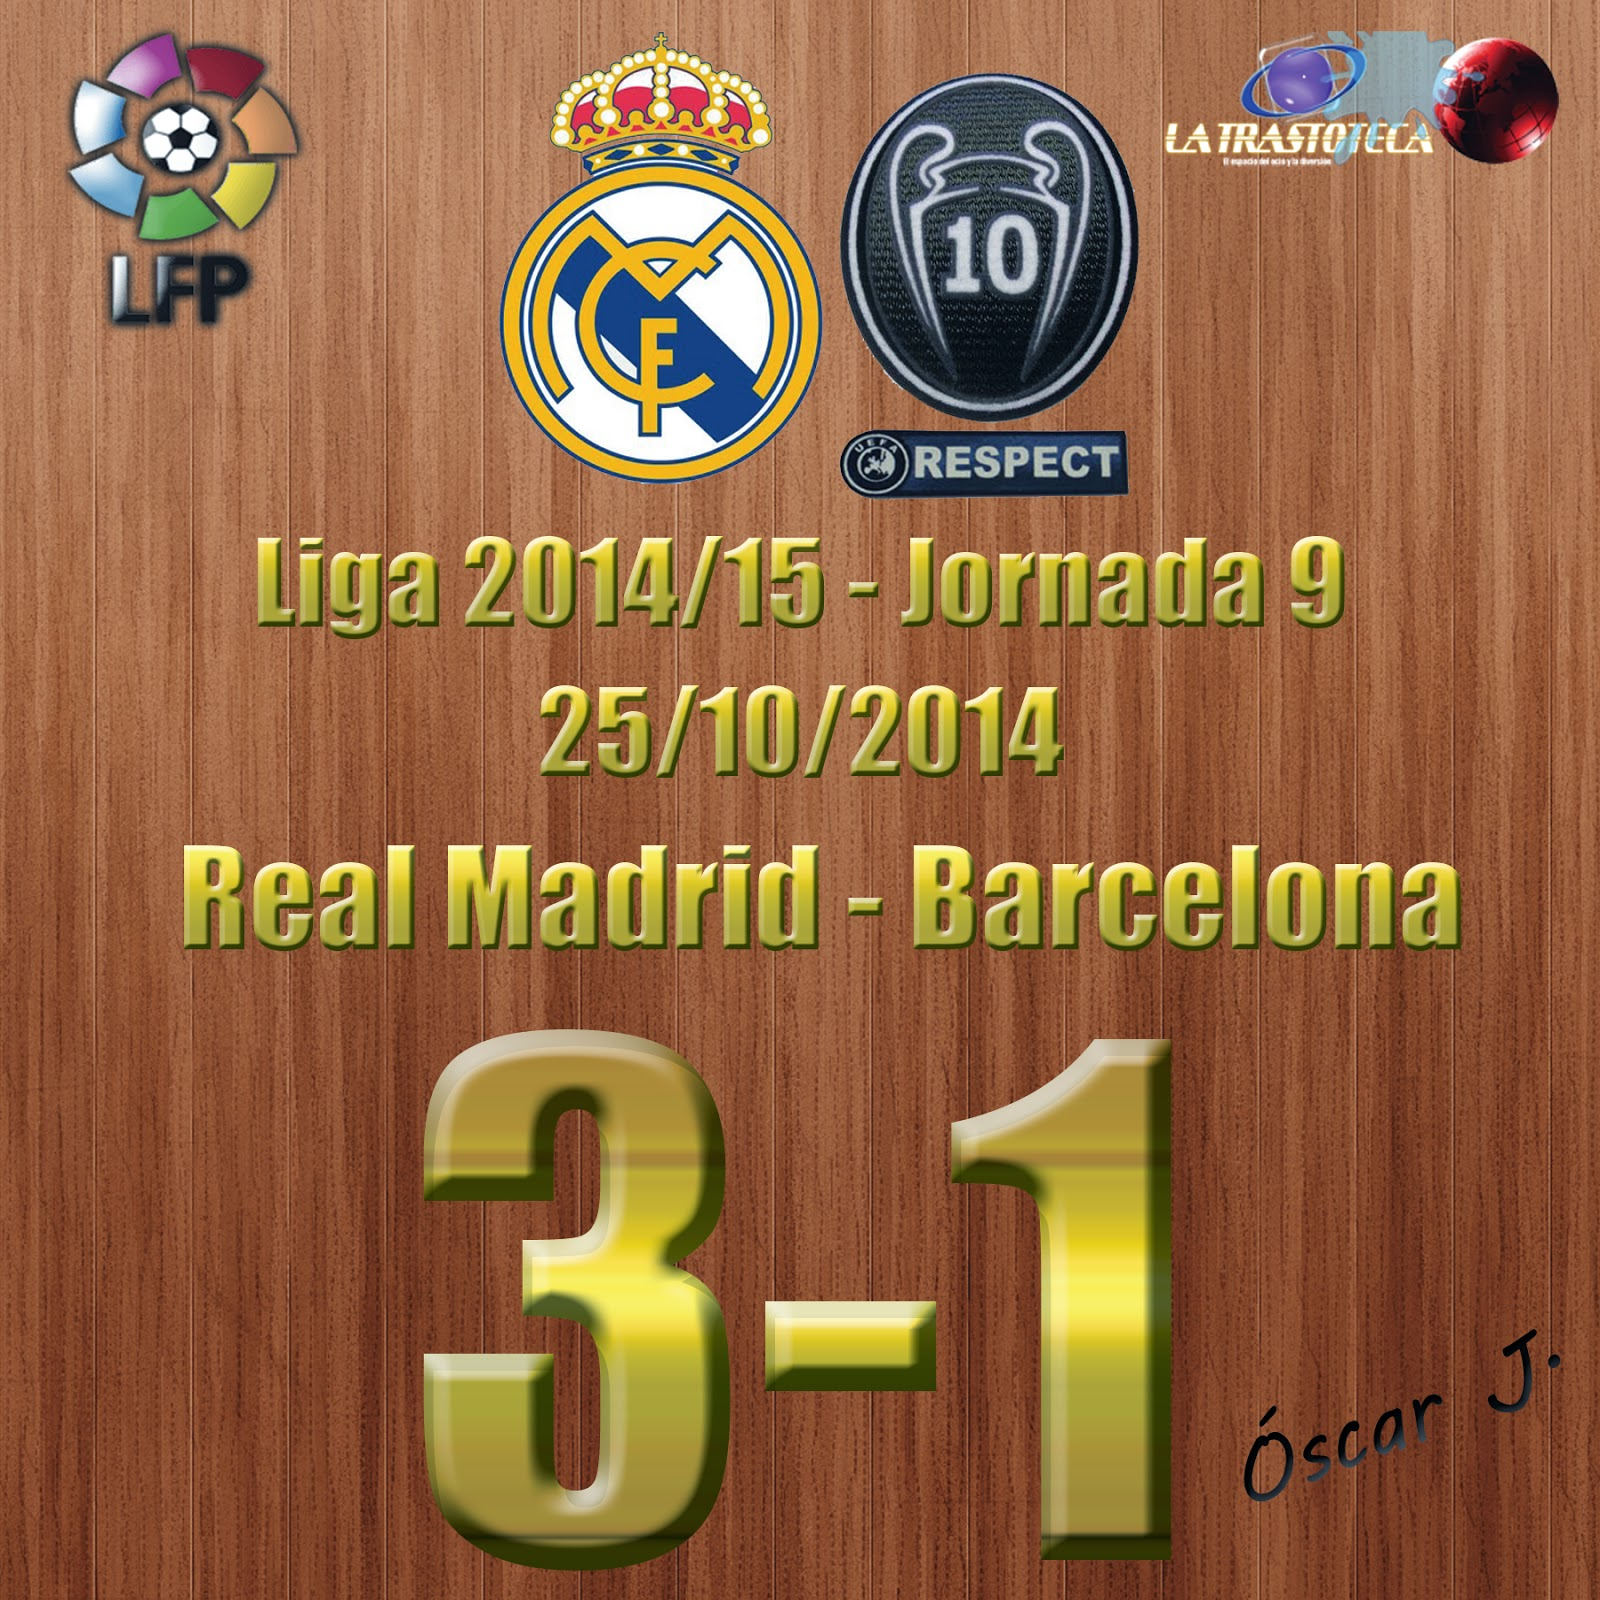 Real Madrid 3-1 Barcelona - Liga 2014/15 - (25/10/2014)